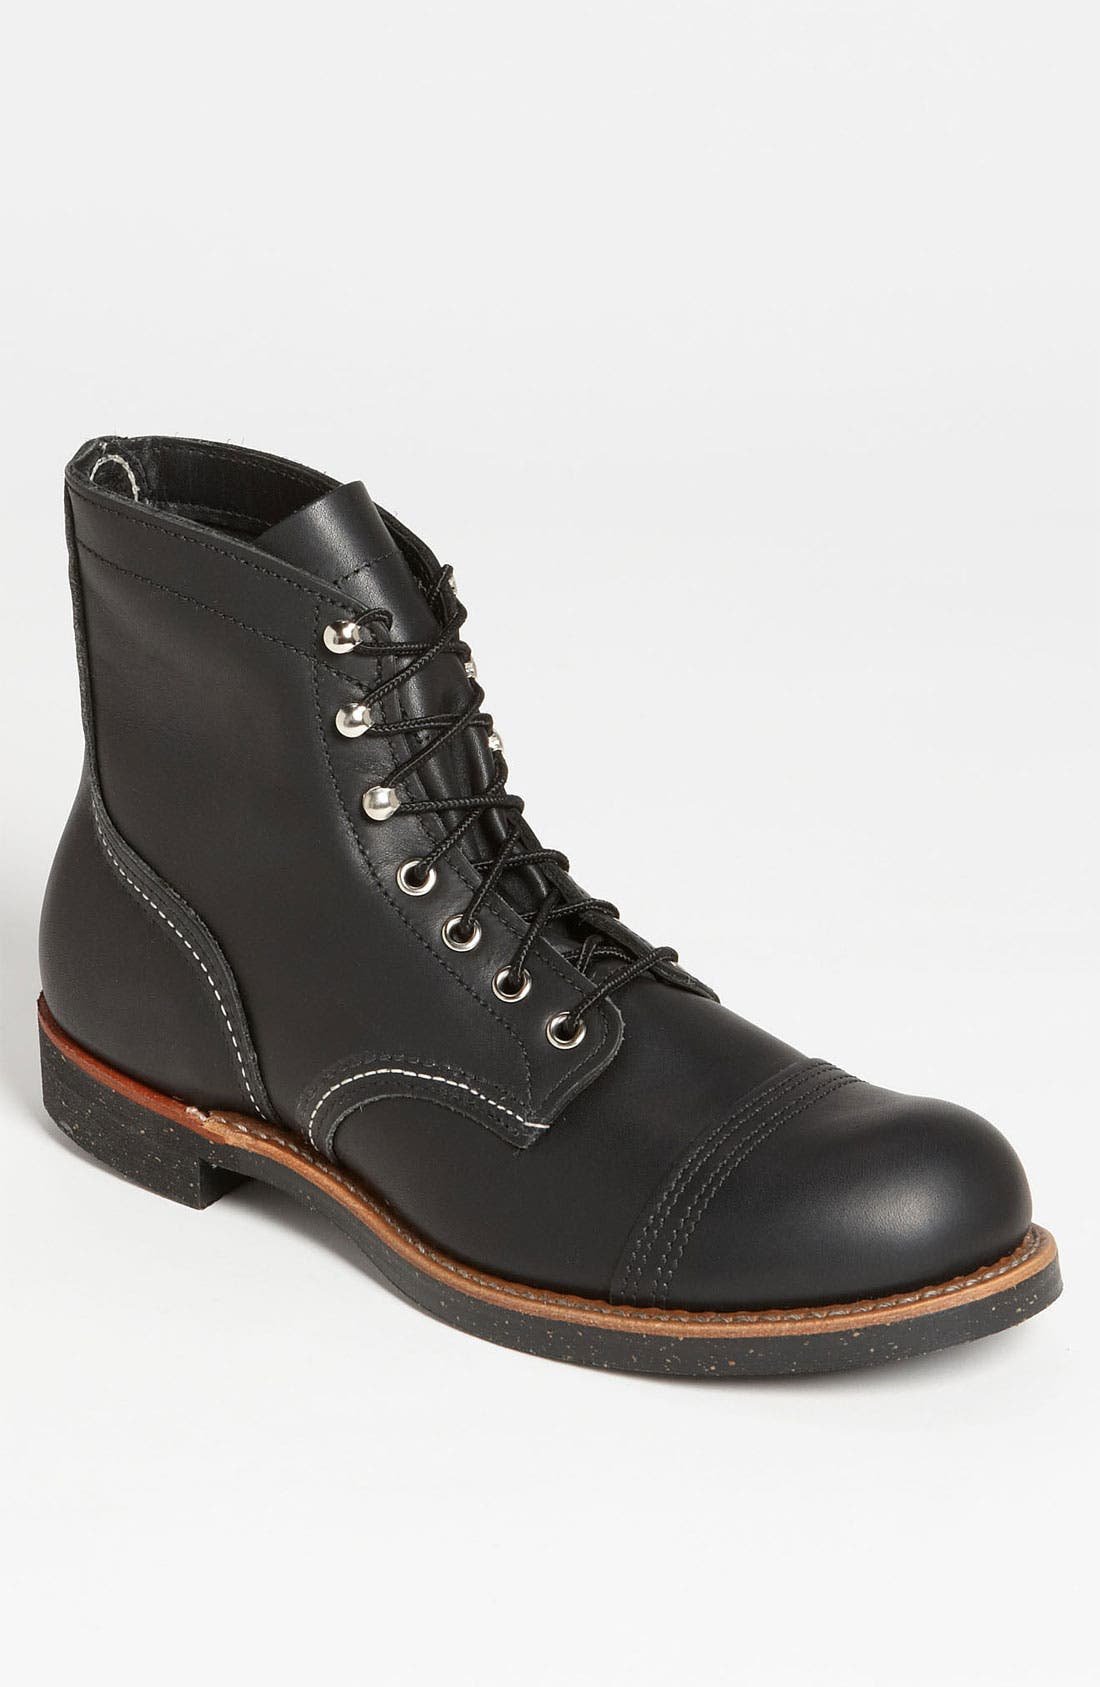 Alternate Image 1 Selected - Red Wing 'Iron Ranger' 6 Inch Cap Toe Boot (Online Only)